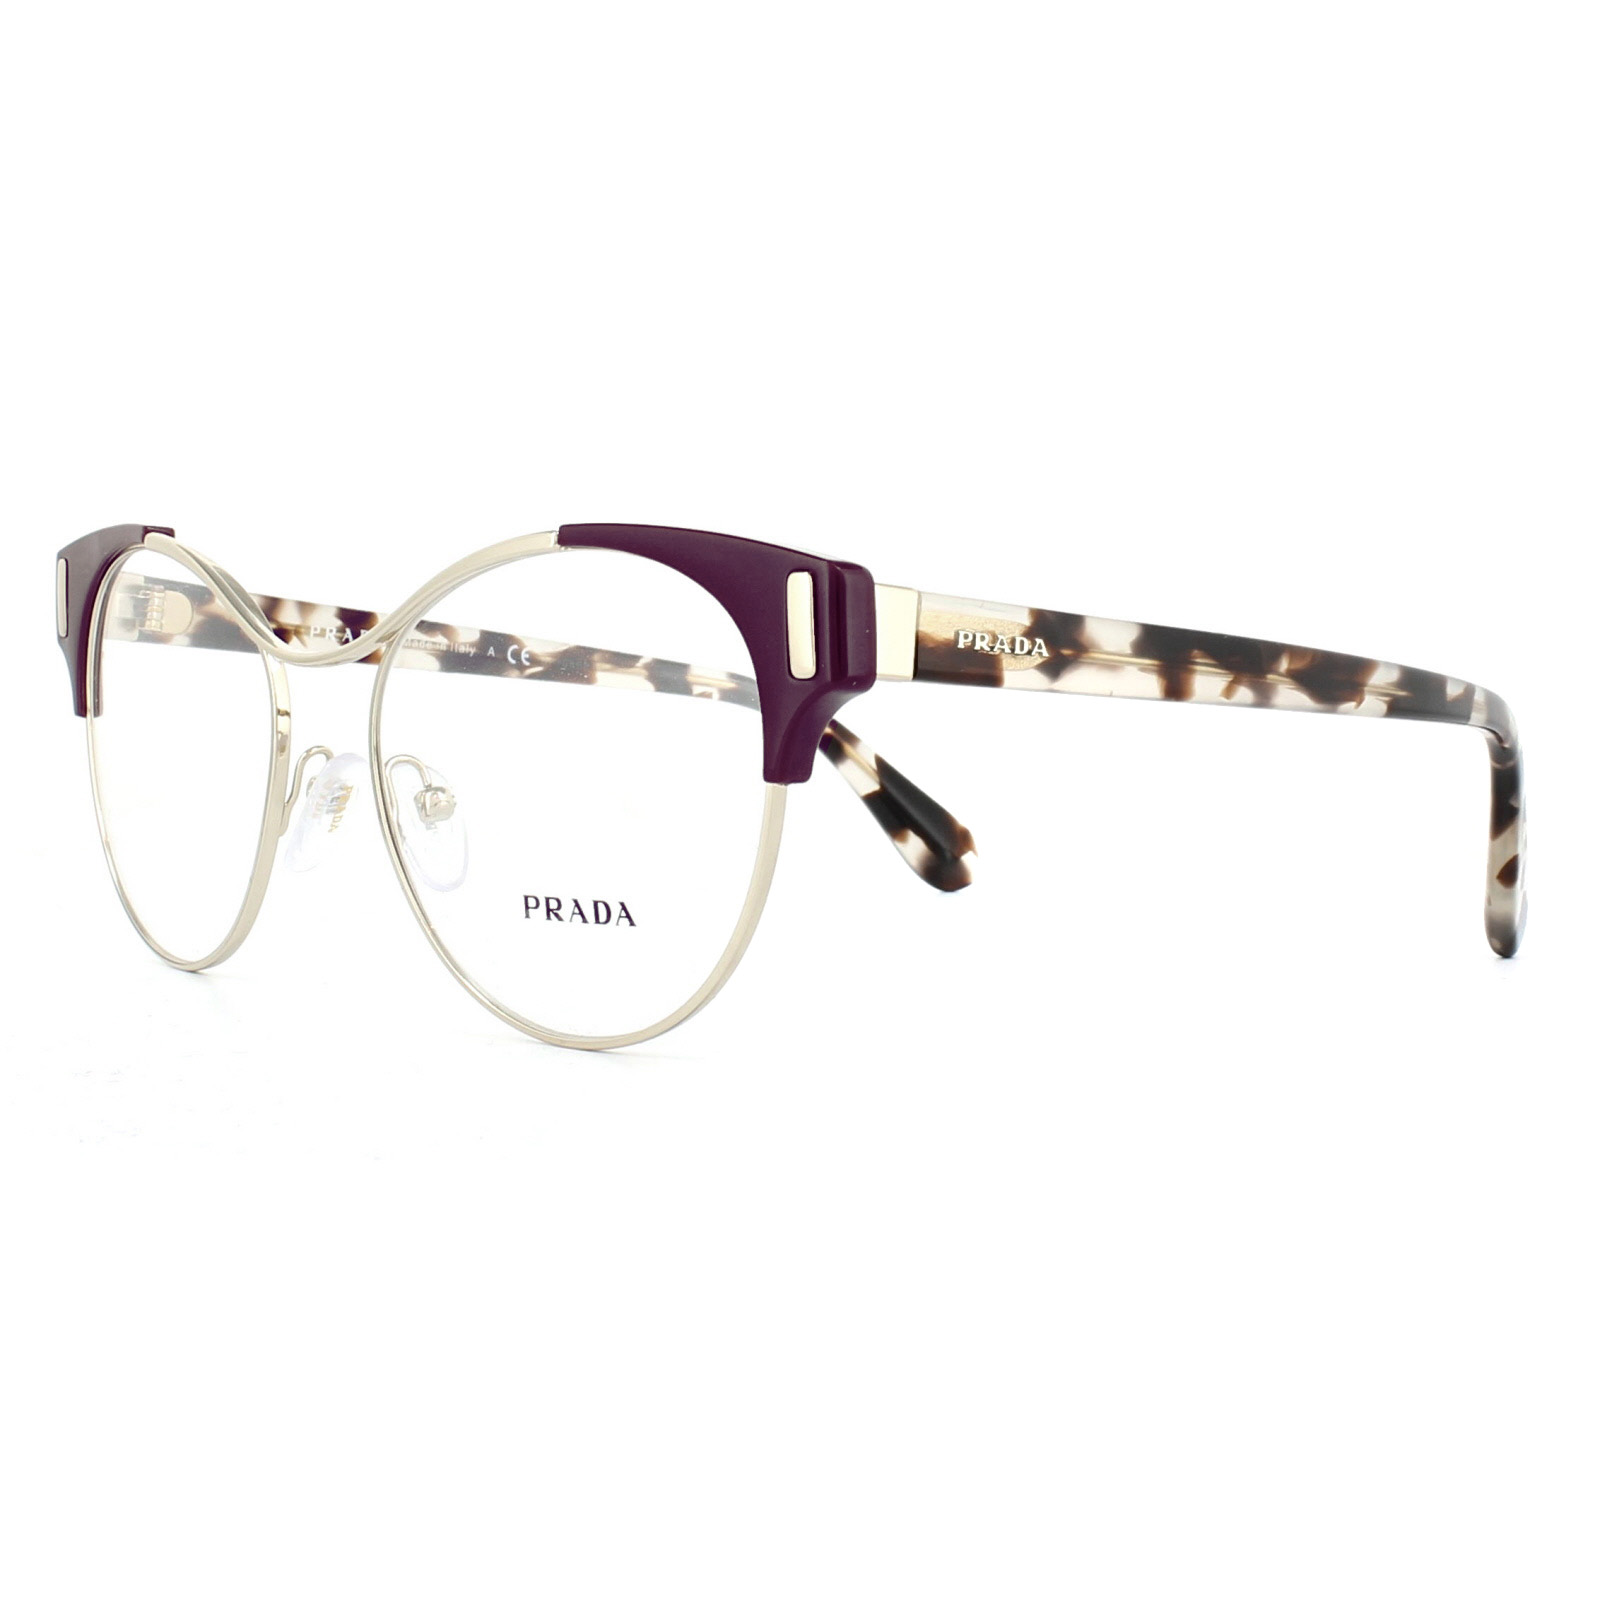 626b75b875c3 Sentinel Prada Glasses Frames PR61TV VAX1O1 Pale Gold Amarantth 52mm Womens